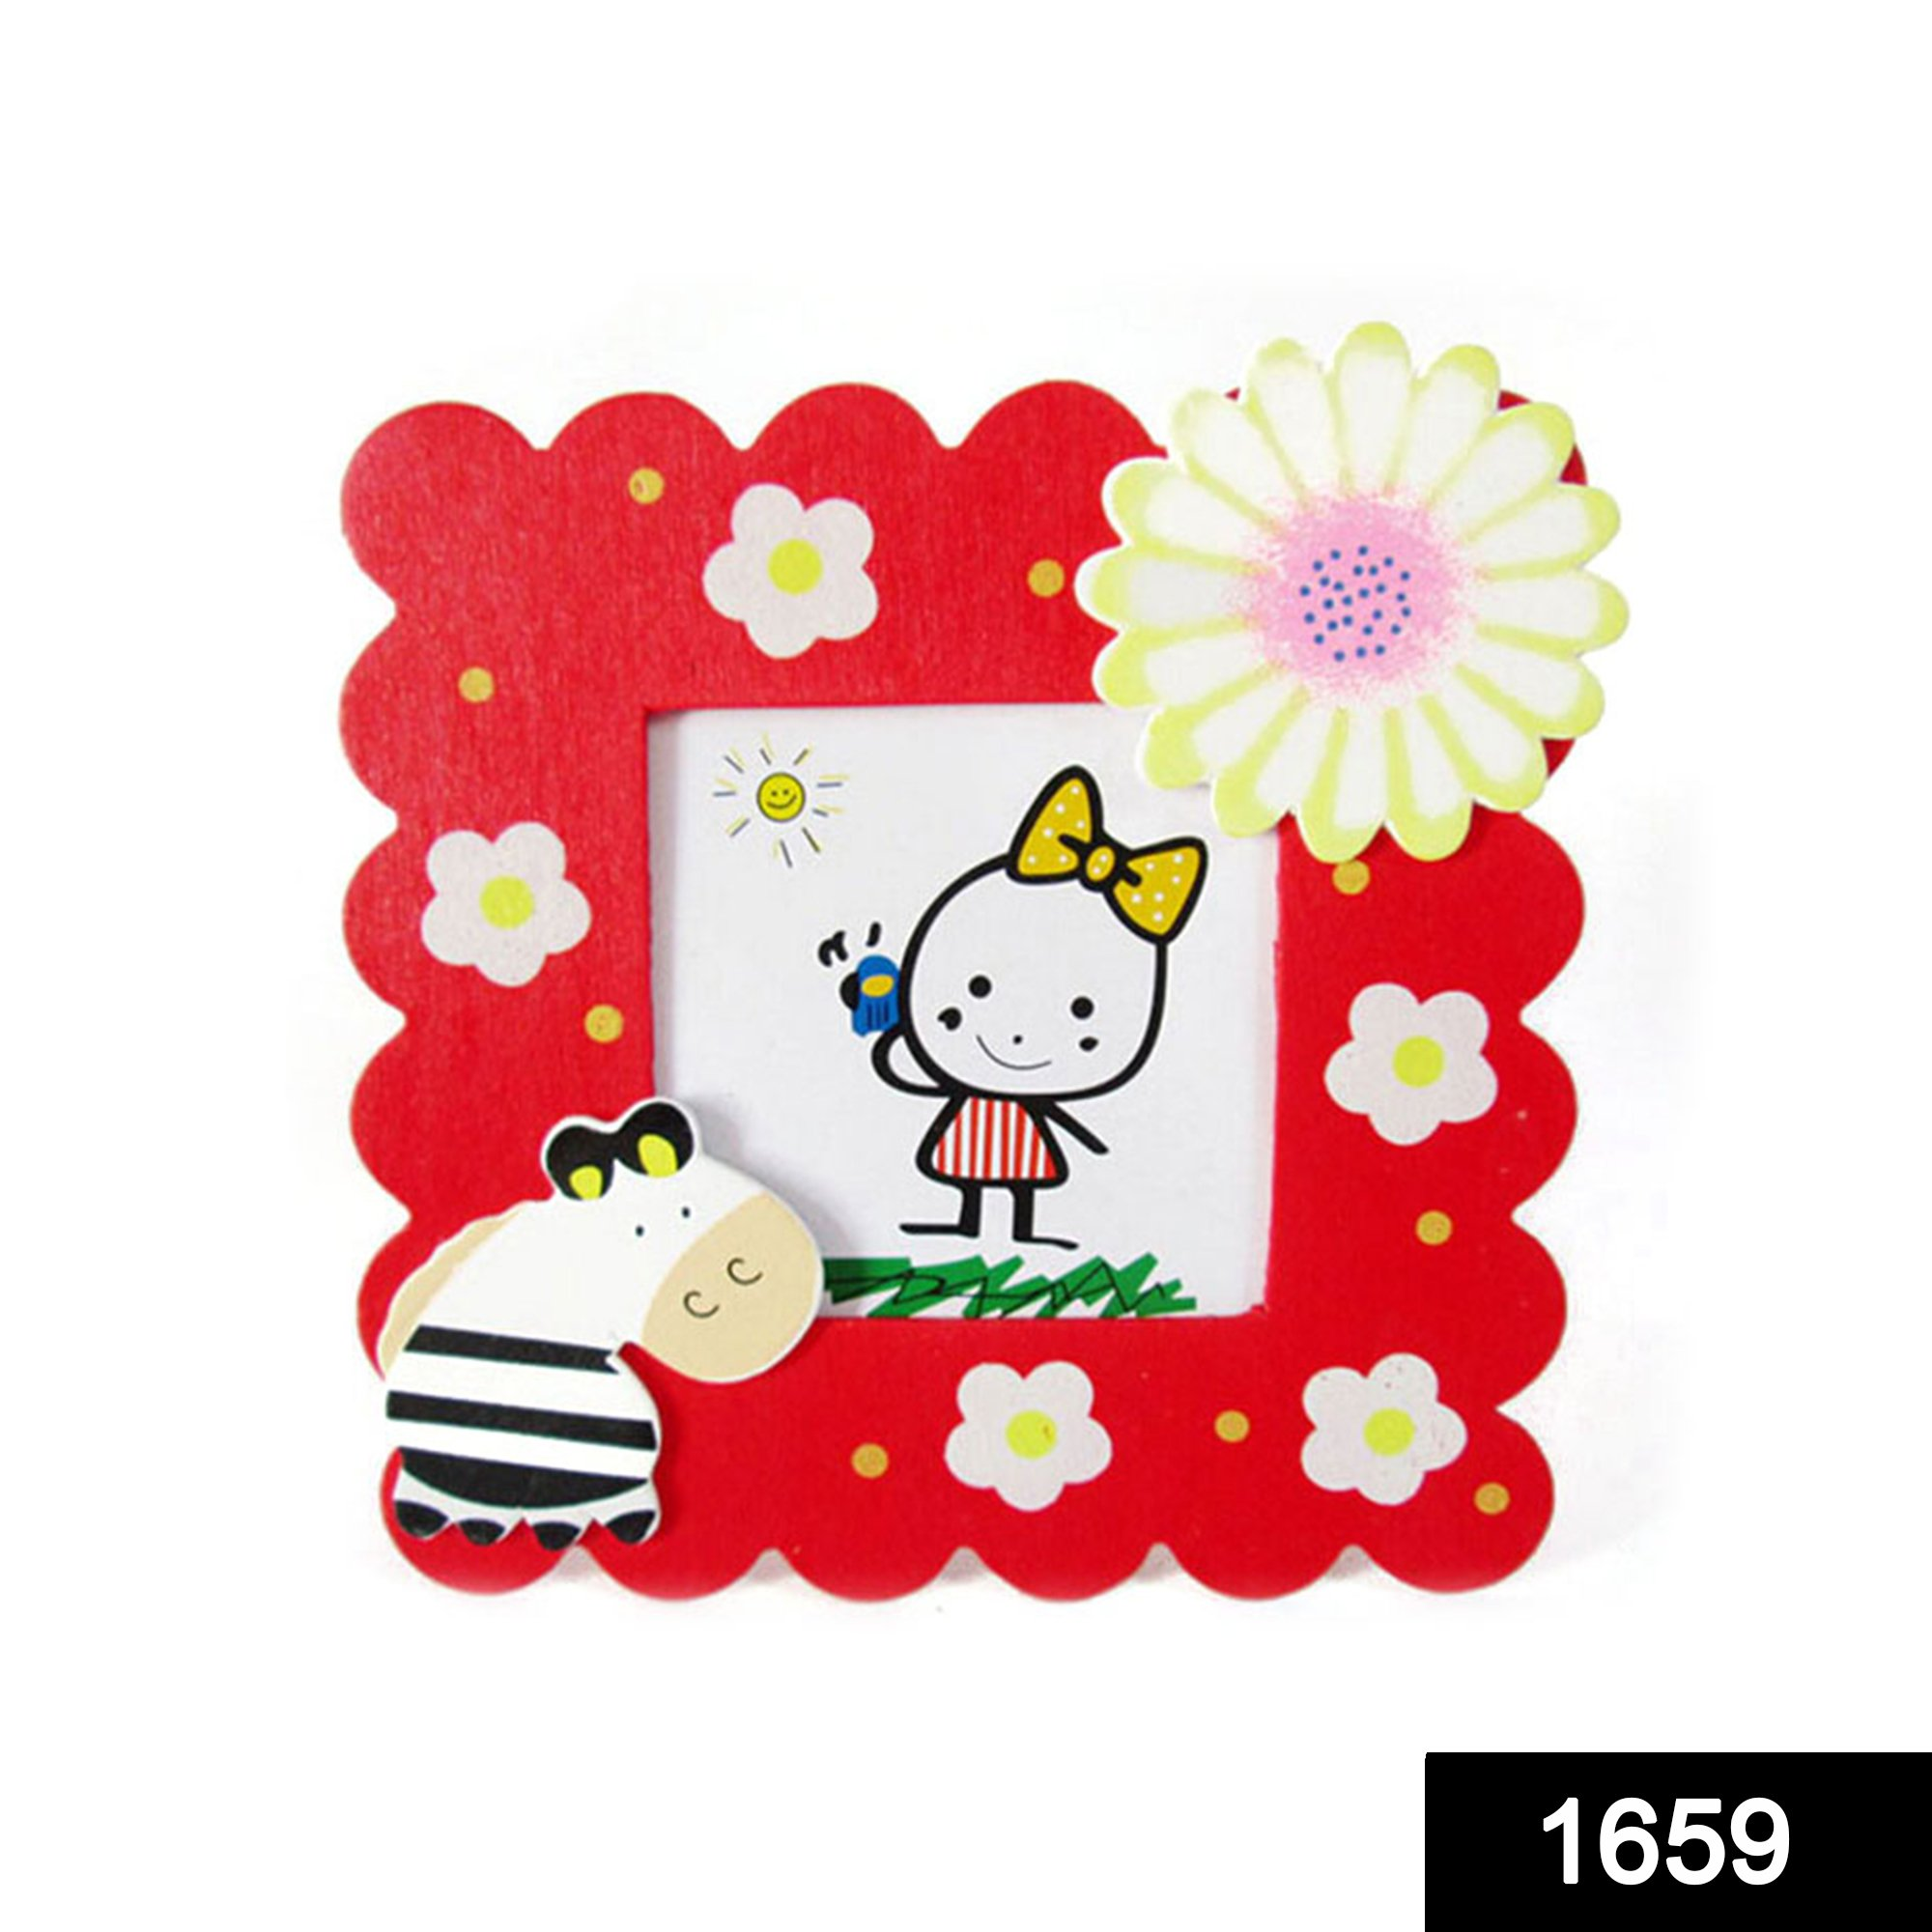 1659 Synthetic Table Photo Frame for Home Decor -